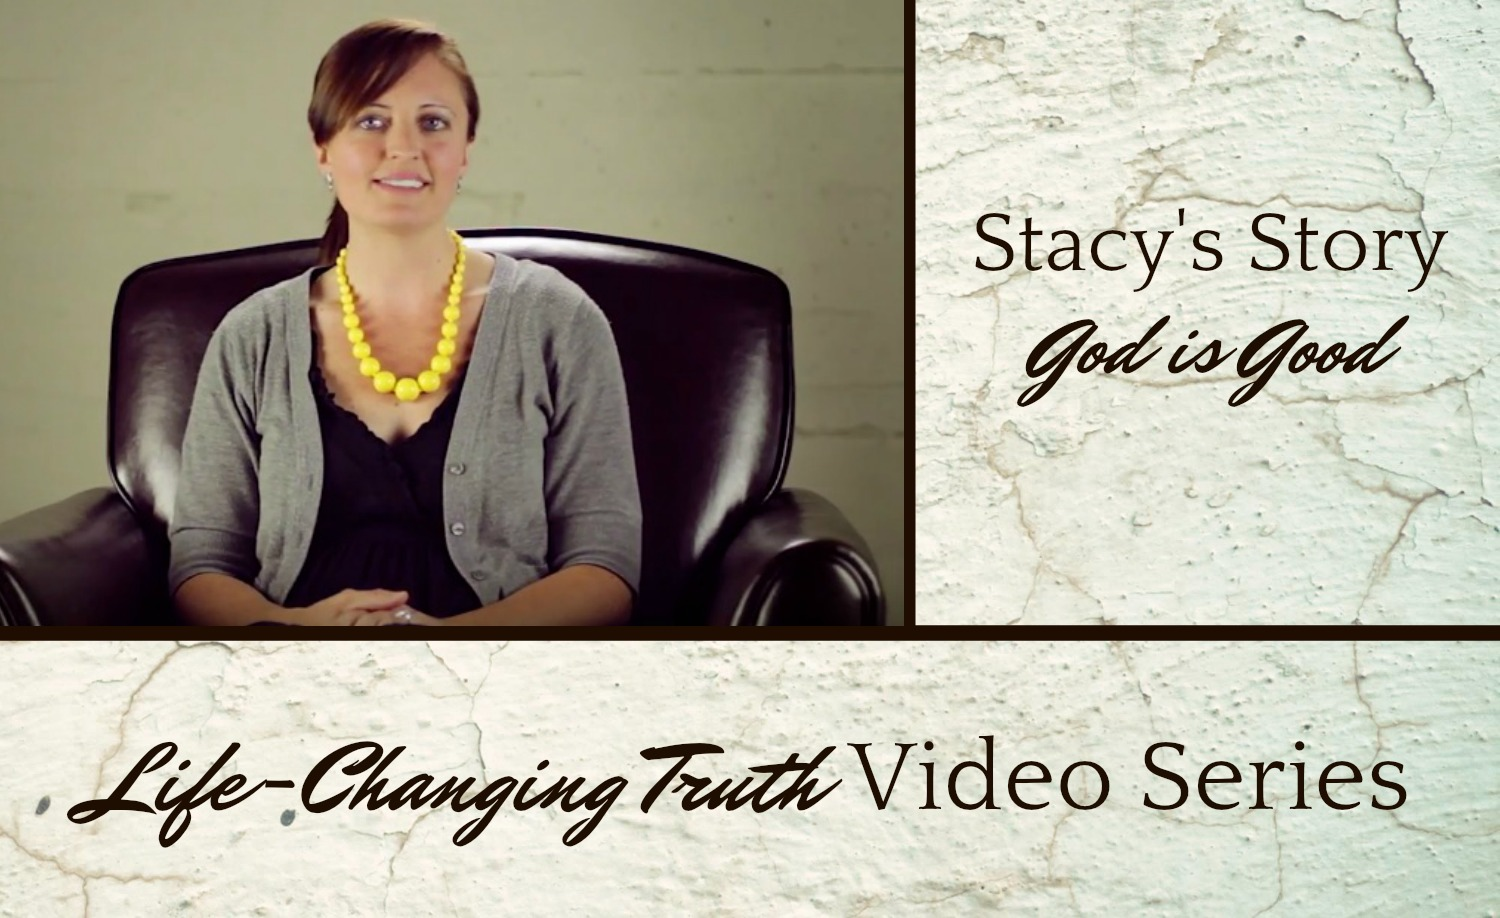 Life-Changing Video Series | The Four G's | Tim Chester | Soma Church | Christine M. Chappell